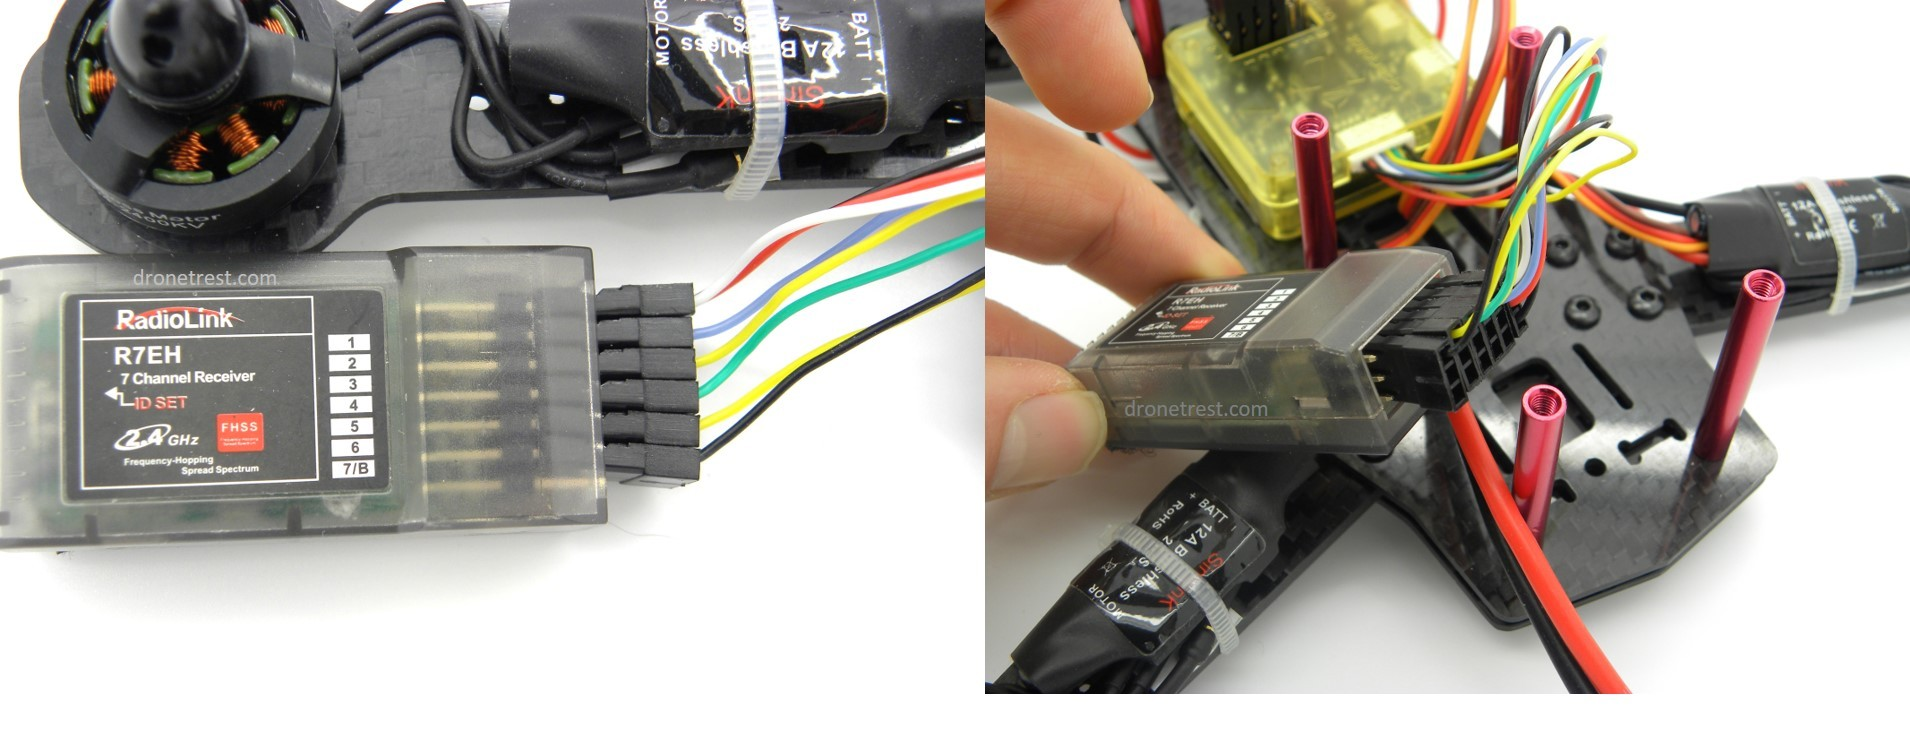 Qav Zmr 250 Assembly Build Guide Guides Dronetrest Cc3d Spektrum Wiring Diagram Receiver Installation 21910x739 233 Kb